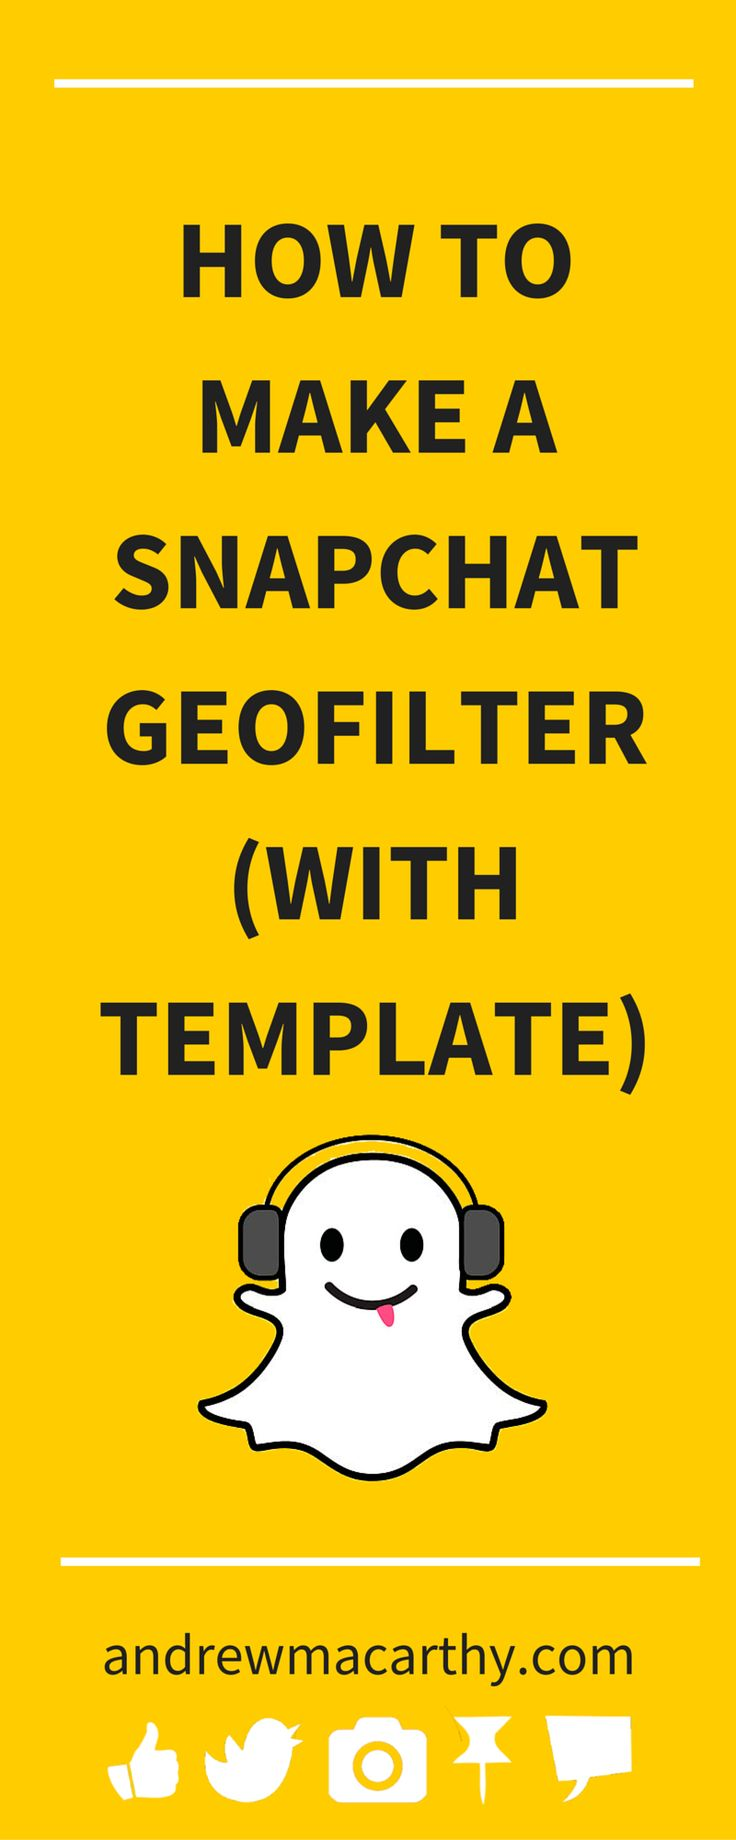 31 best app design images on pinterest snapchat filters geofilter design and snapchat ideas for Snapchat geofilter template download